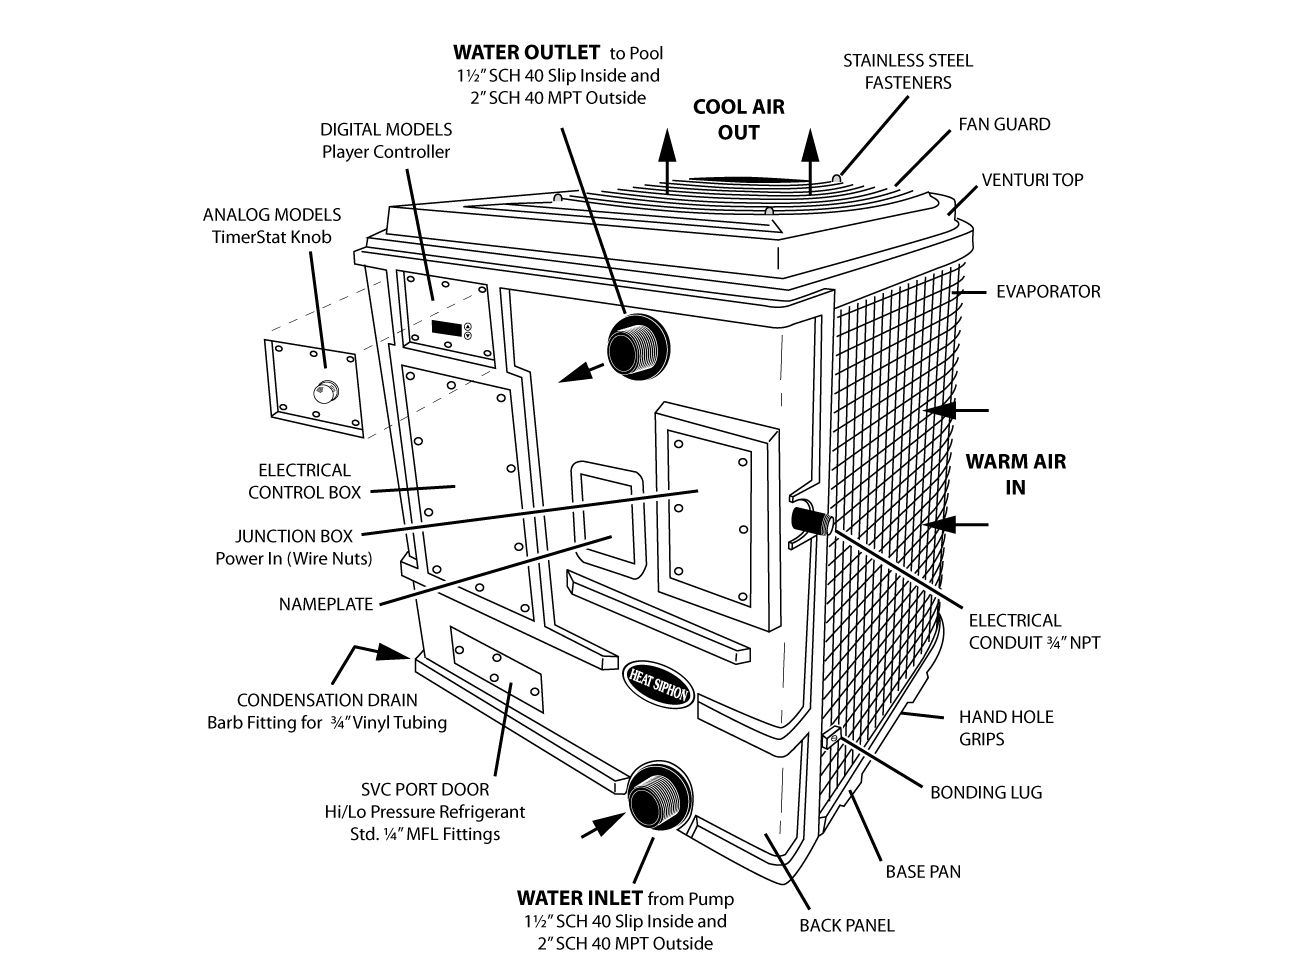 Heat Pumps Diagram Heated Grips Wire Pictures